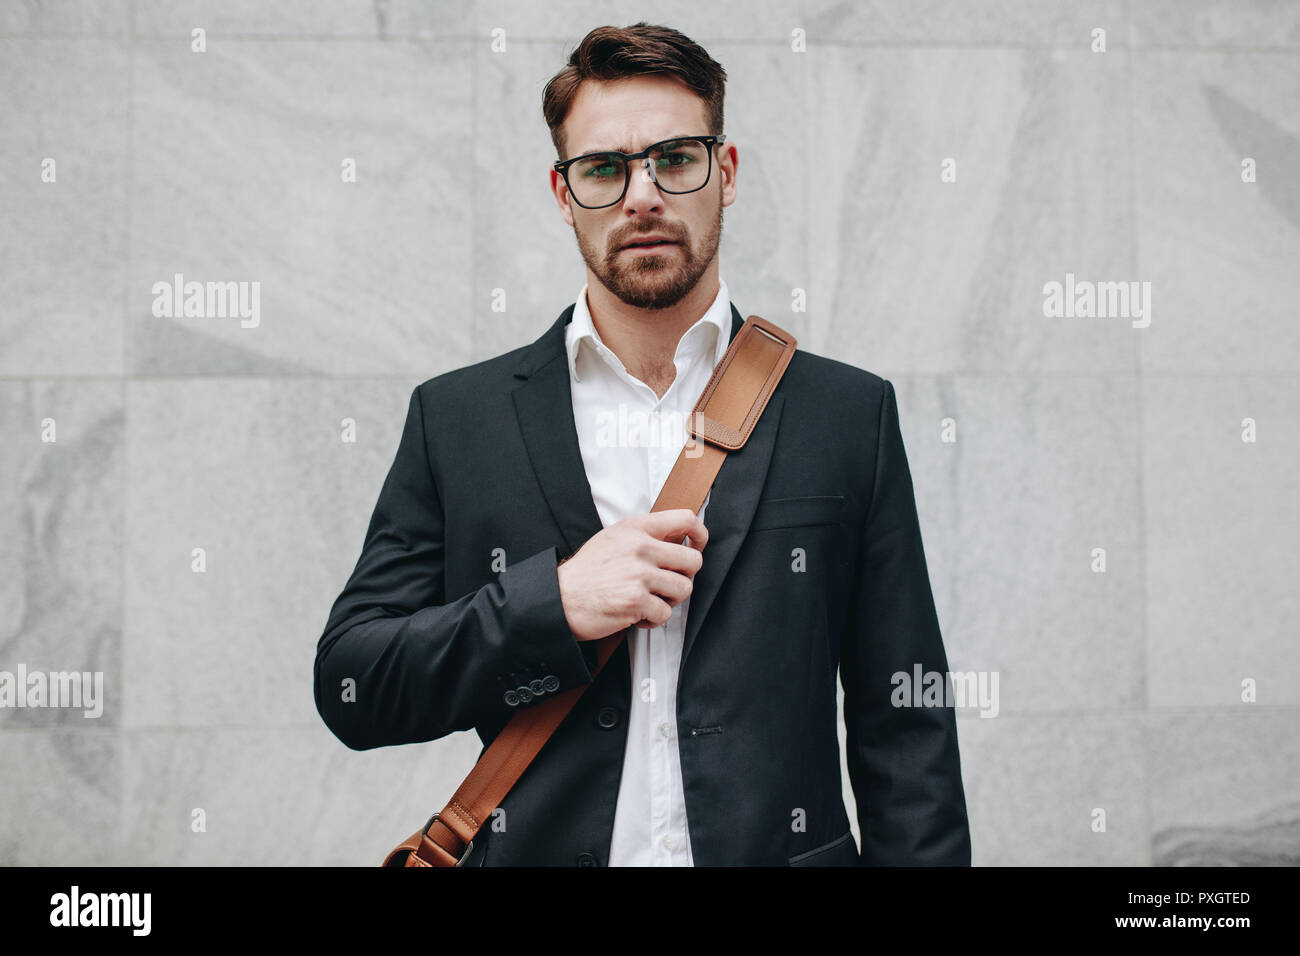 Businessman standing against a tiled wall wearing an office bag. Young man wearing eyeglasses and carrying an office bag standing outdoors. - Stock Image